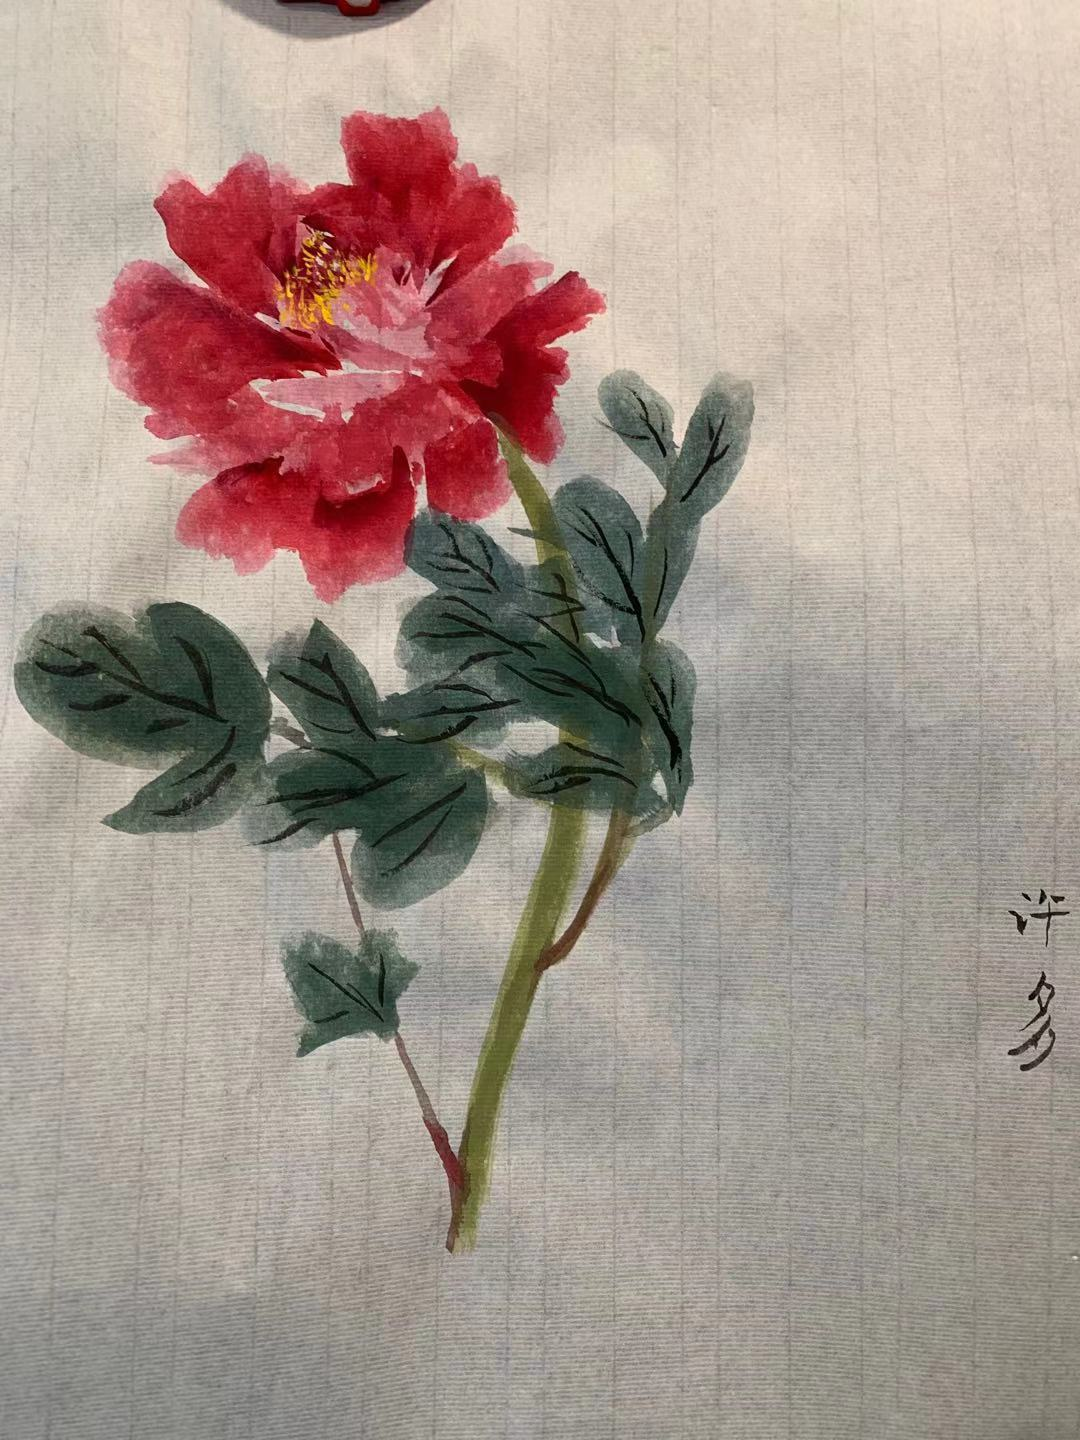 A picture containing flower, plant  Description automatically generated